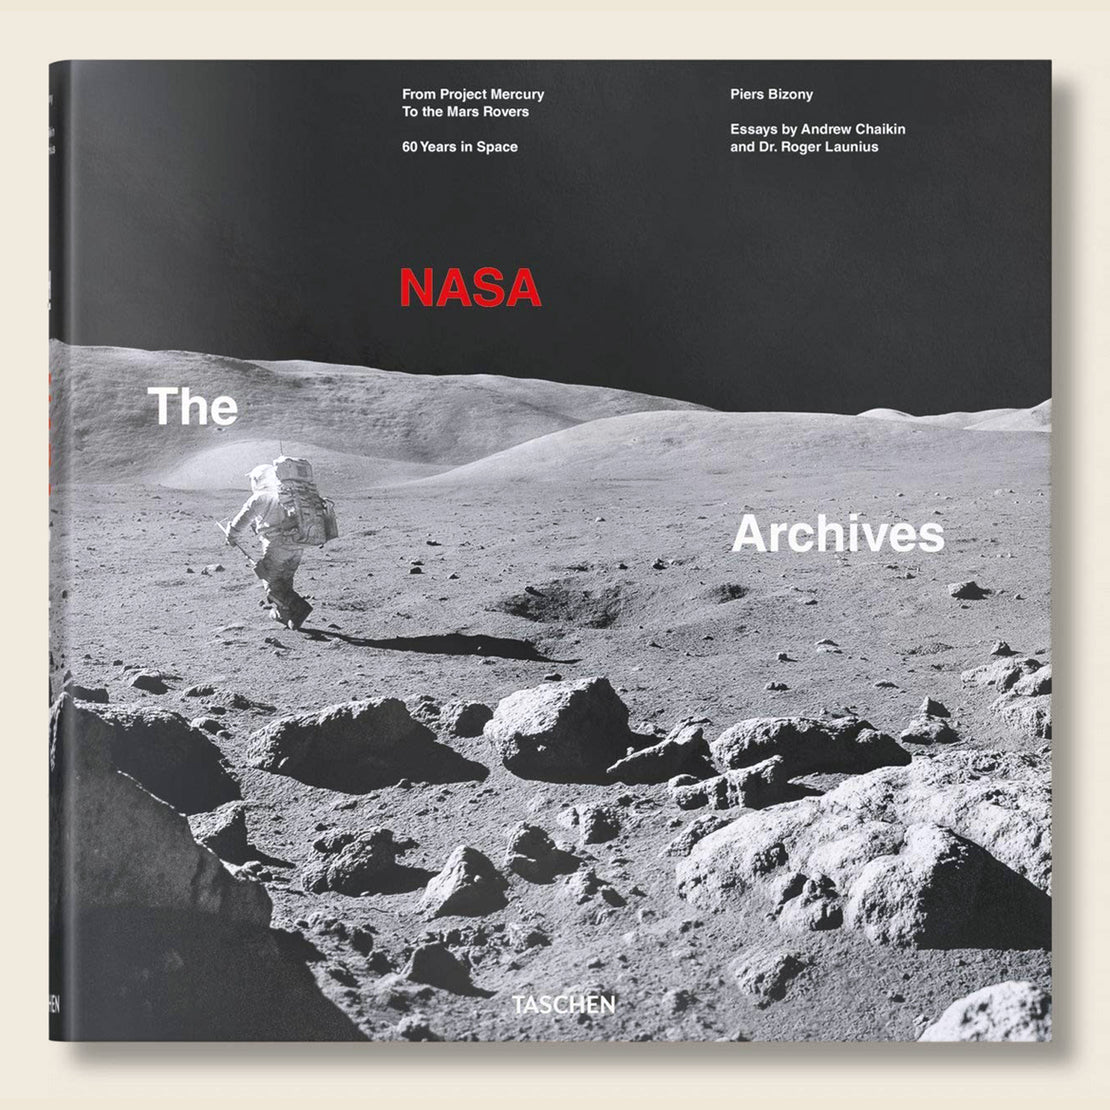 Bookstore The NASA Archives: 60 Years in Space - Piers Bizony